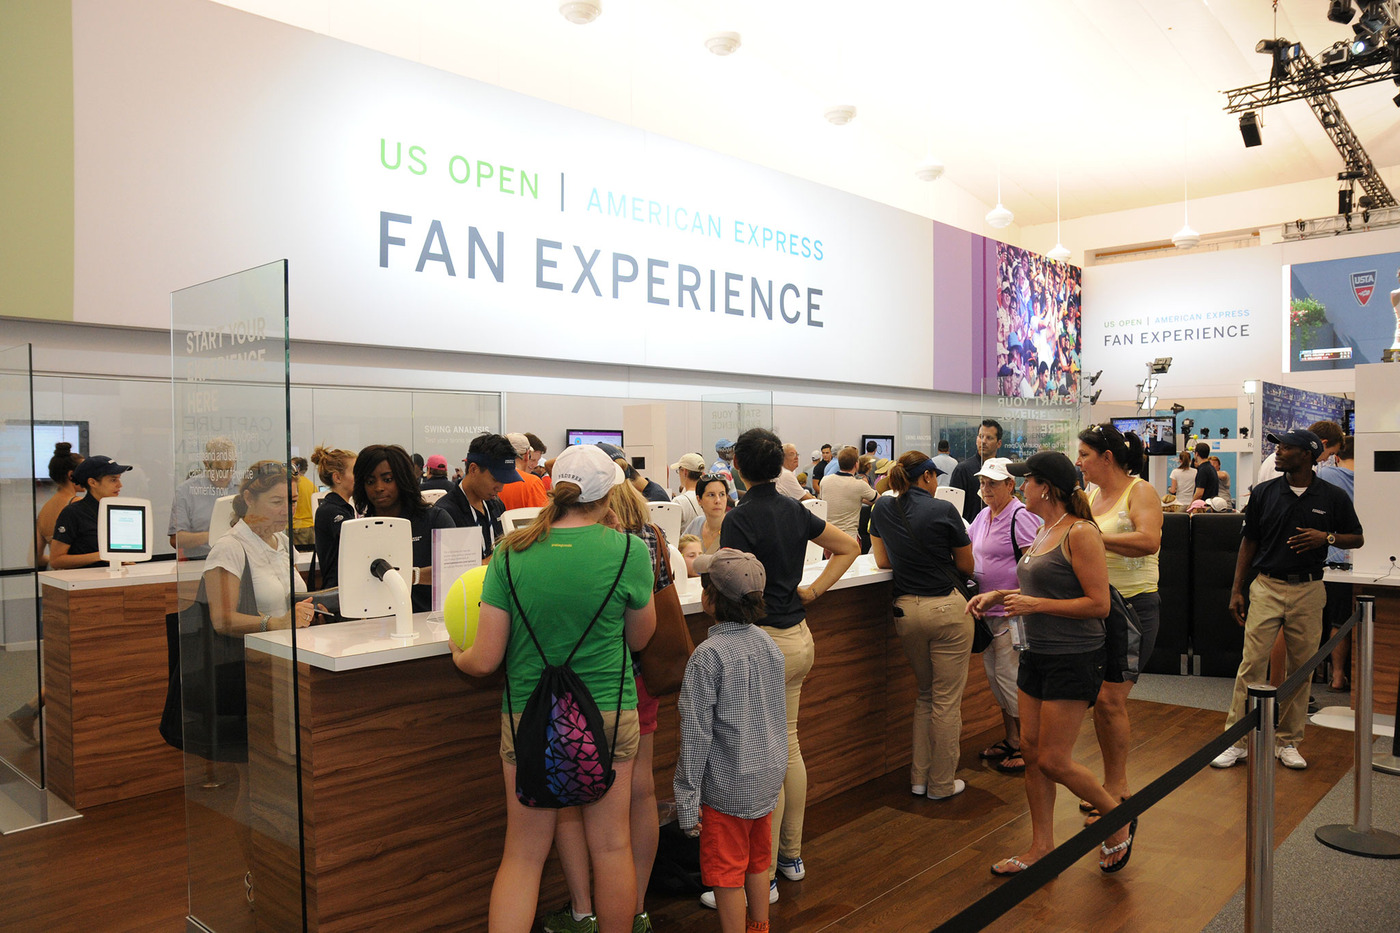 Besides matches, fans of all ages enjoy a wide variety of activities inside the American Express Fan Experience at the 2014 US Open. Photo Credit:  Mike Lawrence/usopen.org